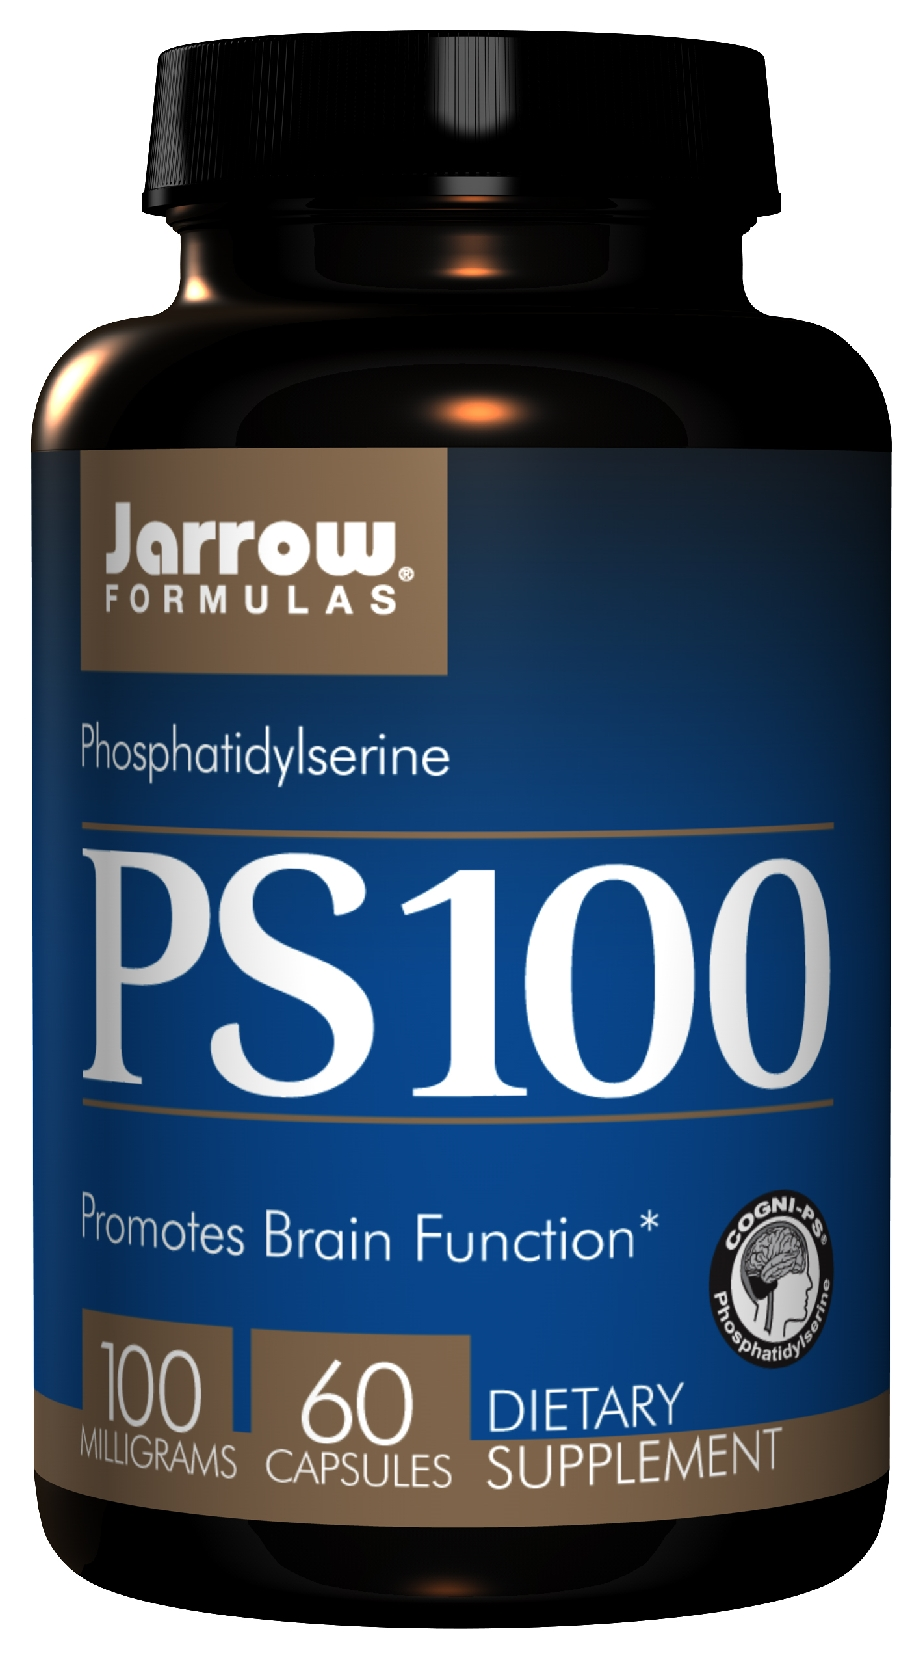 PS 100 Phosphatidylserine 100 mg 60 caps by Jarrow Formulas